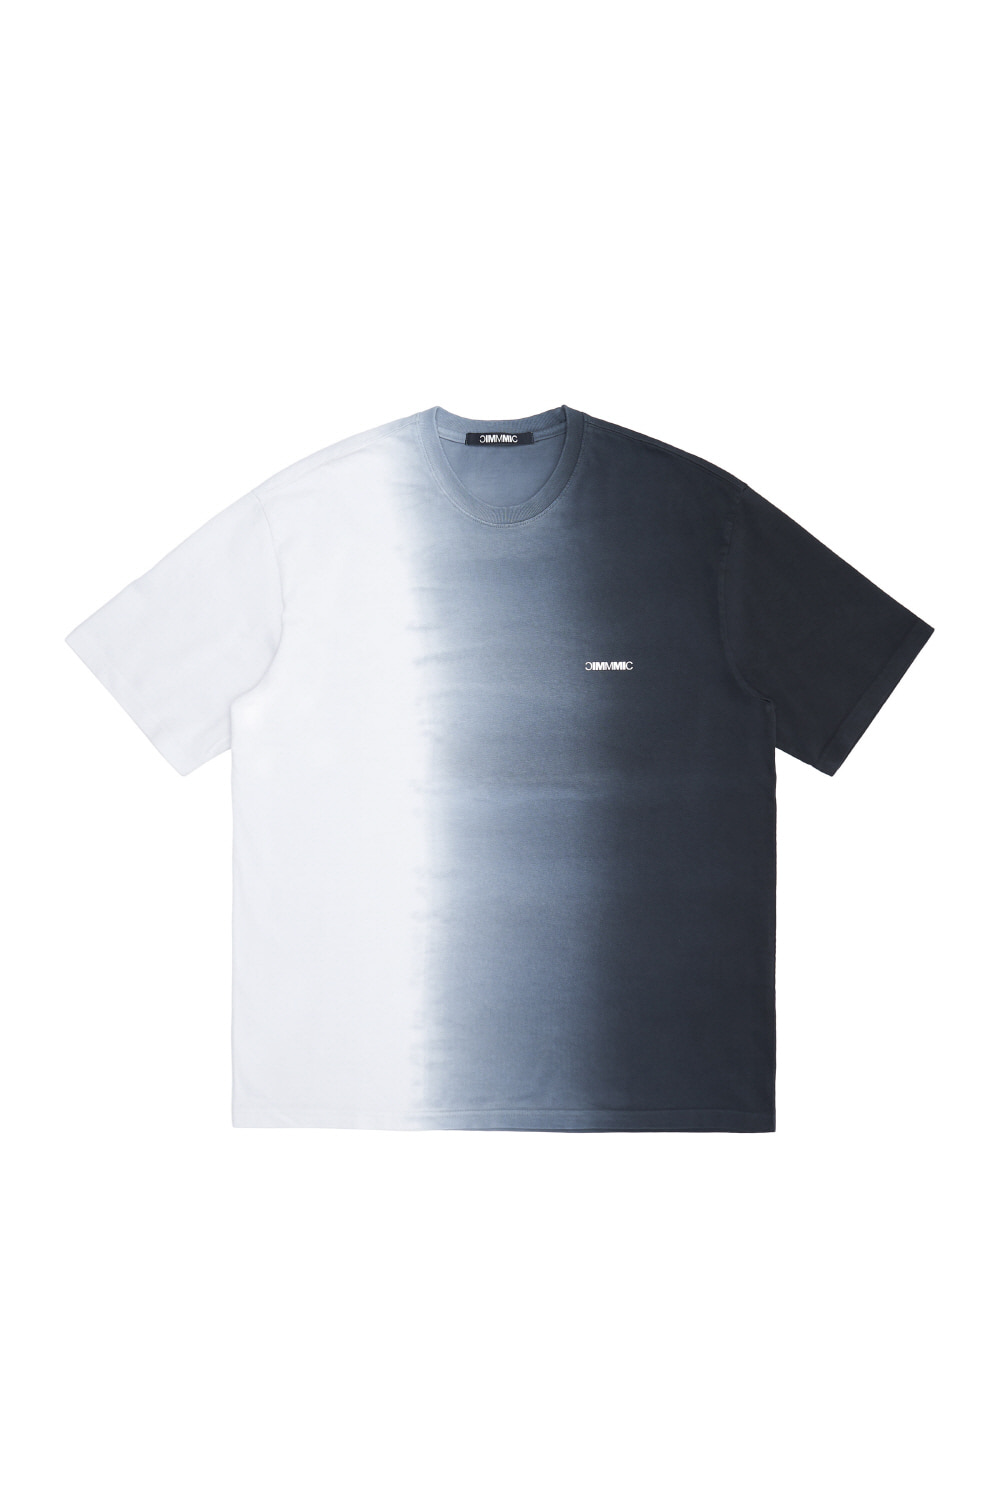 GRADIENT S/SL T-SHIRTS